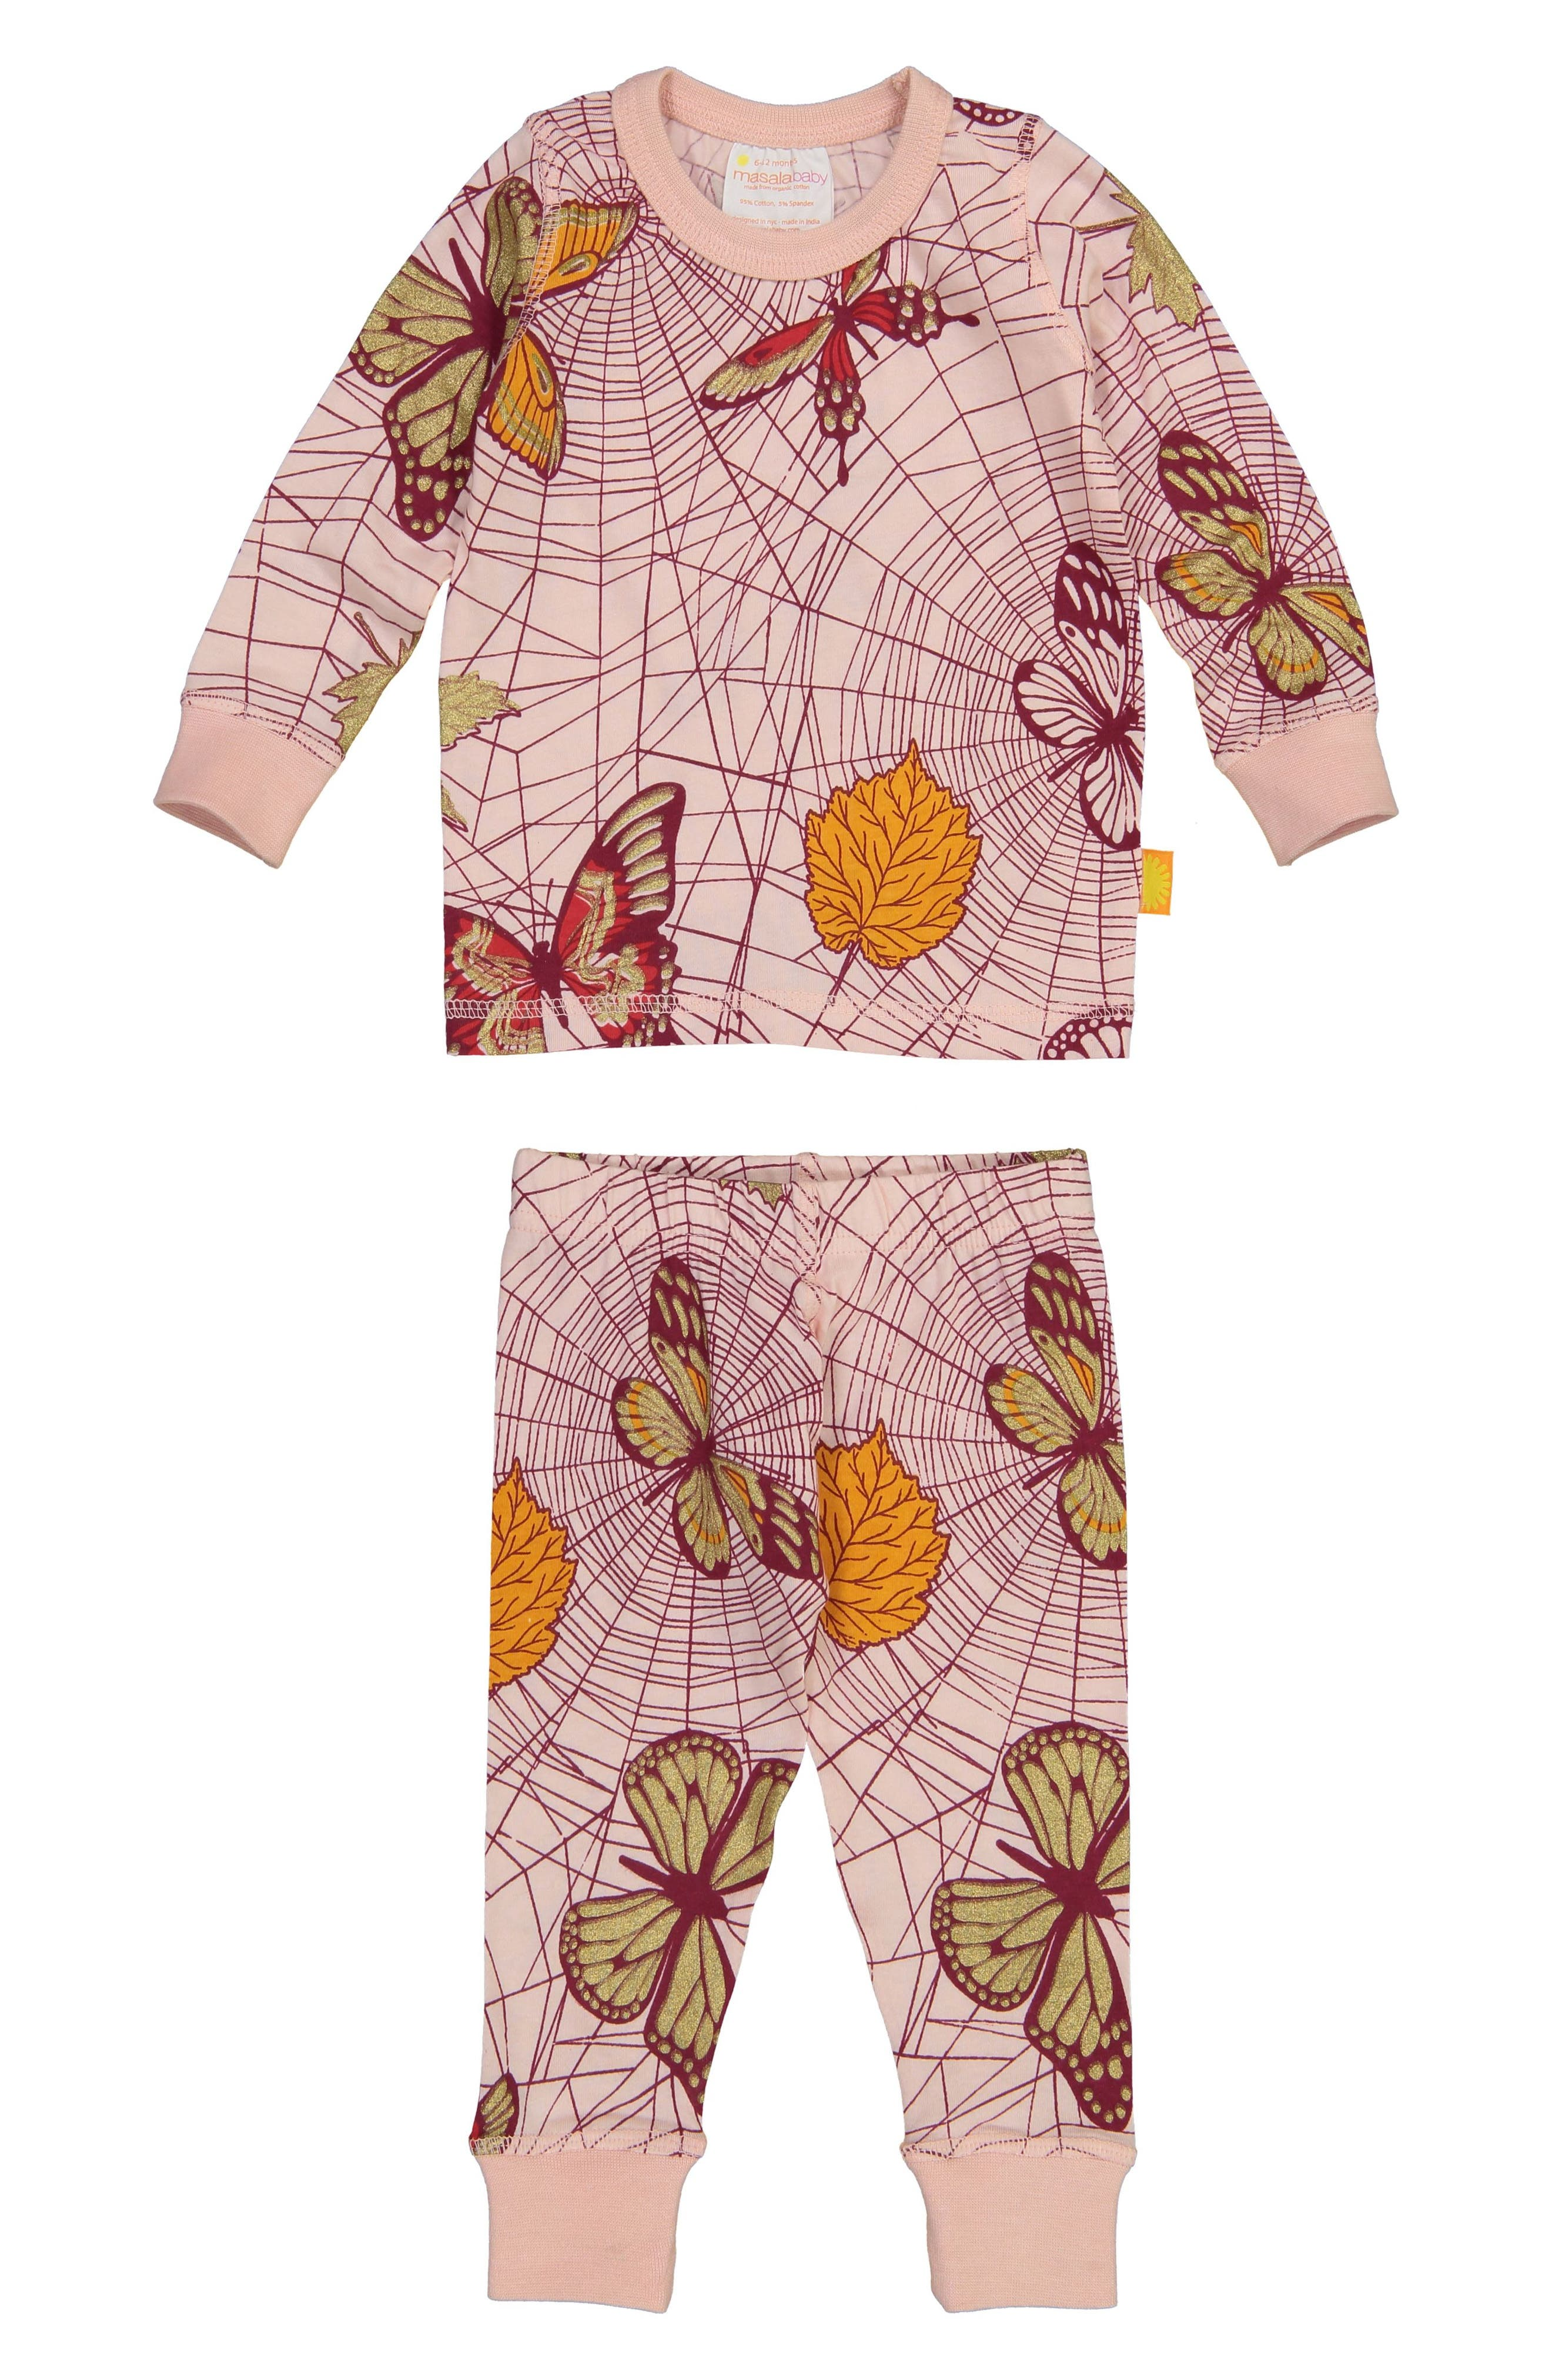 Spiderweb Organic Cotton Fitted Two-Piece Pajamas,                             Alternate thumbnail 2, color,                             PINK